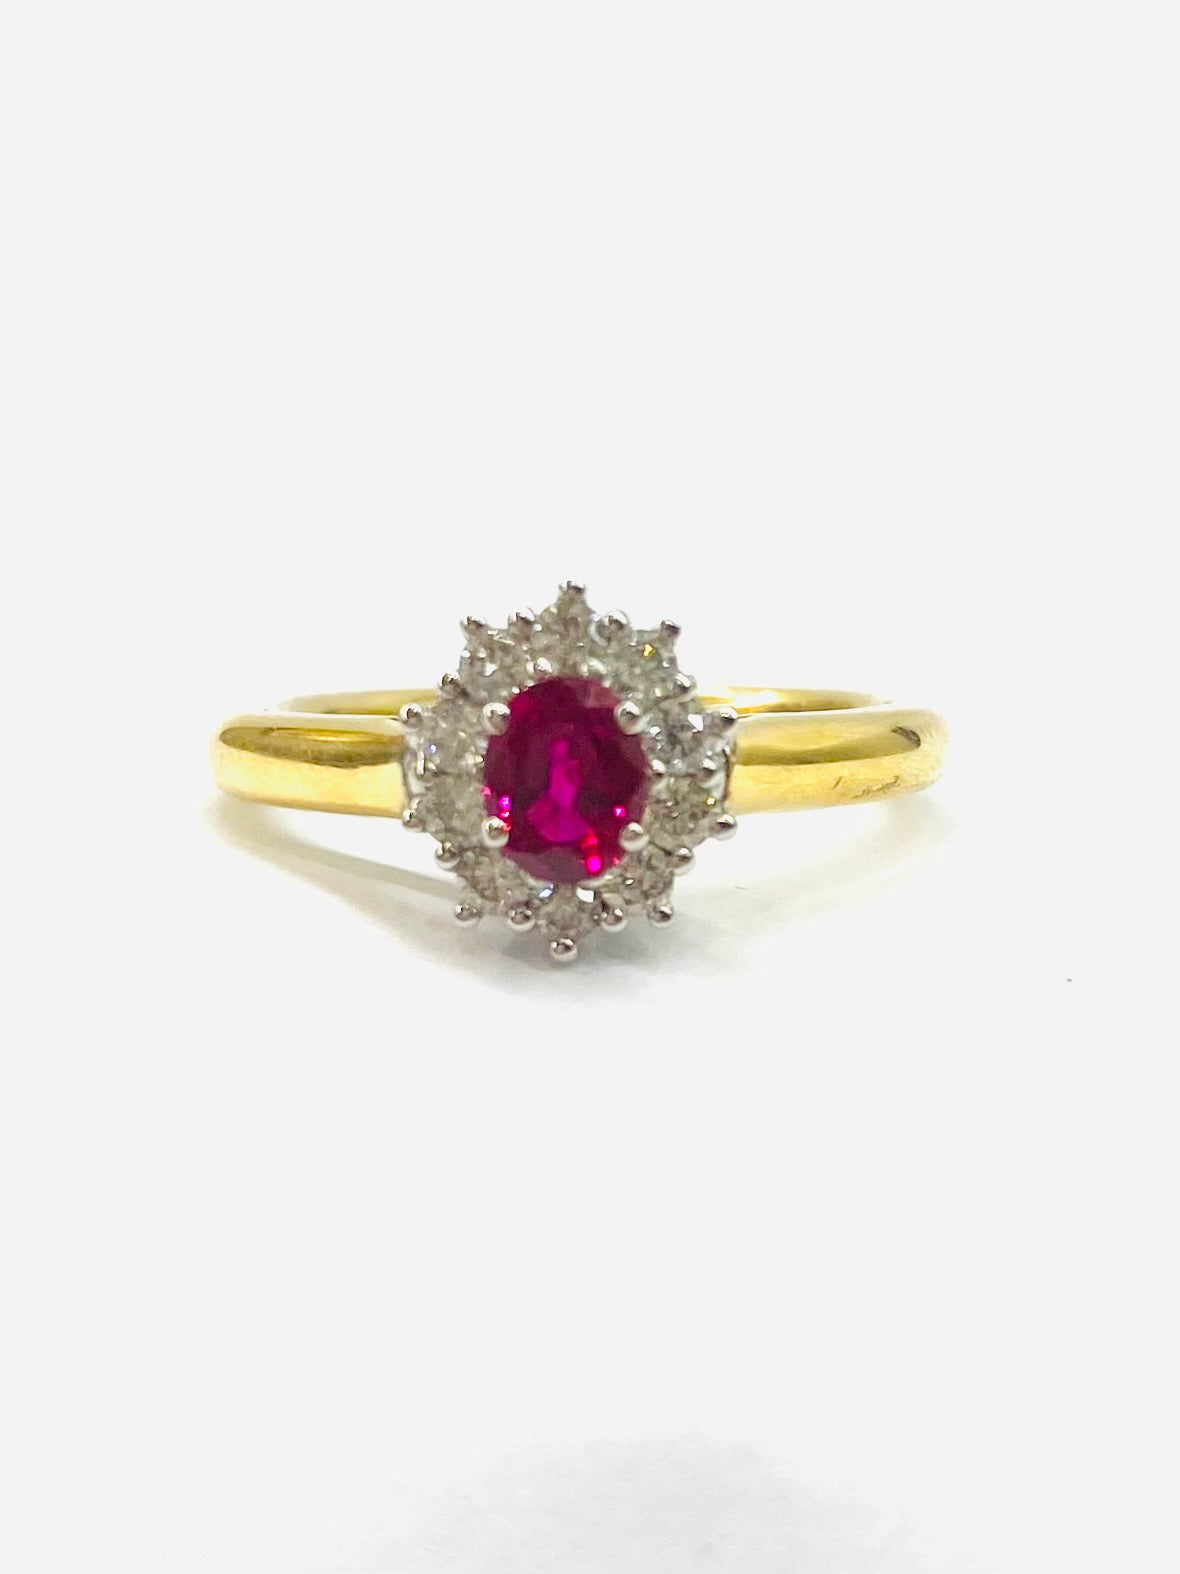 18ct Yellow Gold Ruby & Diamond Cluster Ring R.47 & D.25 2571/4